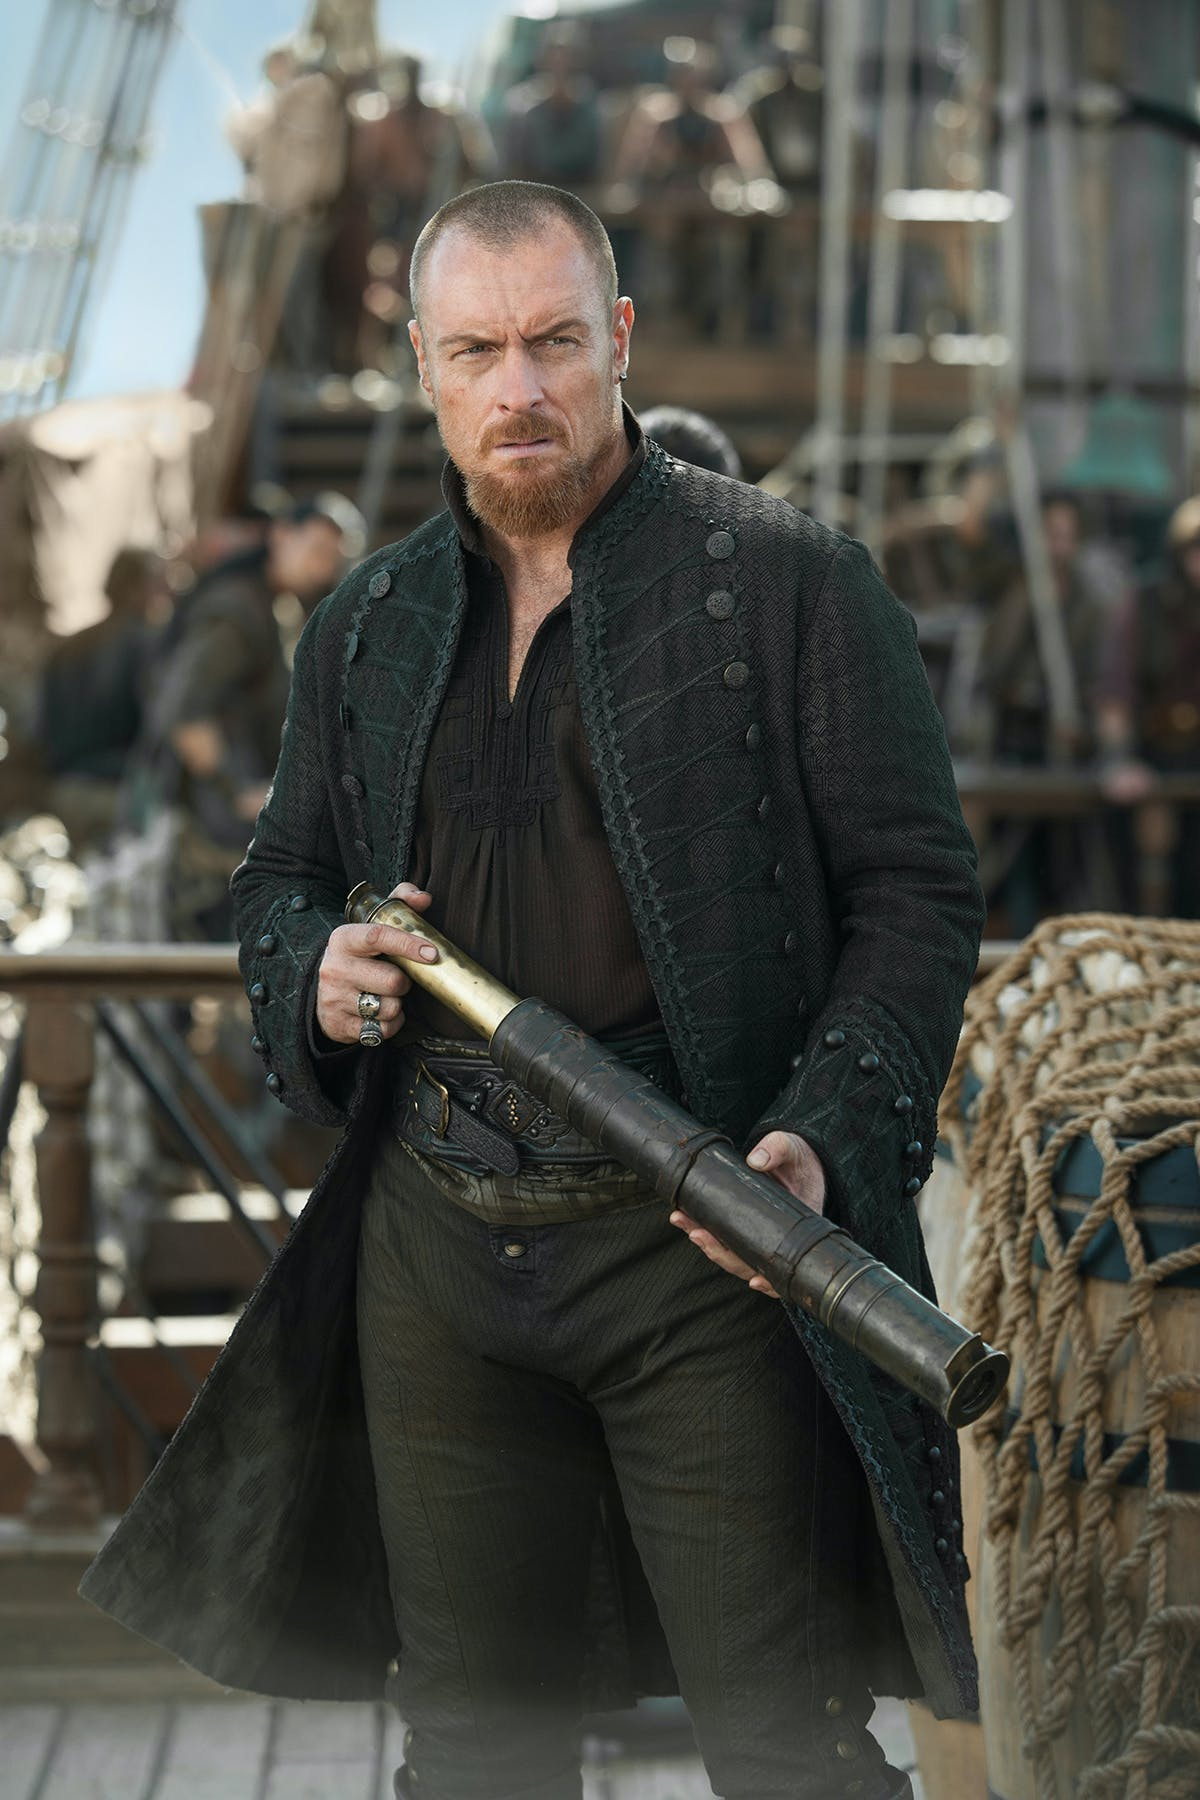 Toby Stephens as James Flint on the final season of 'Black Sails'